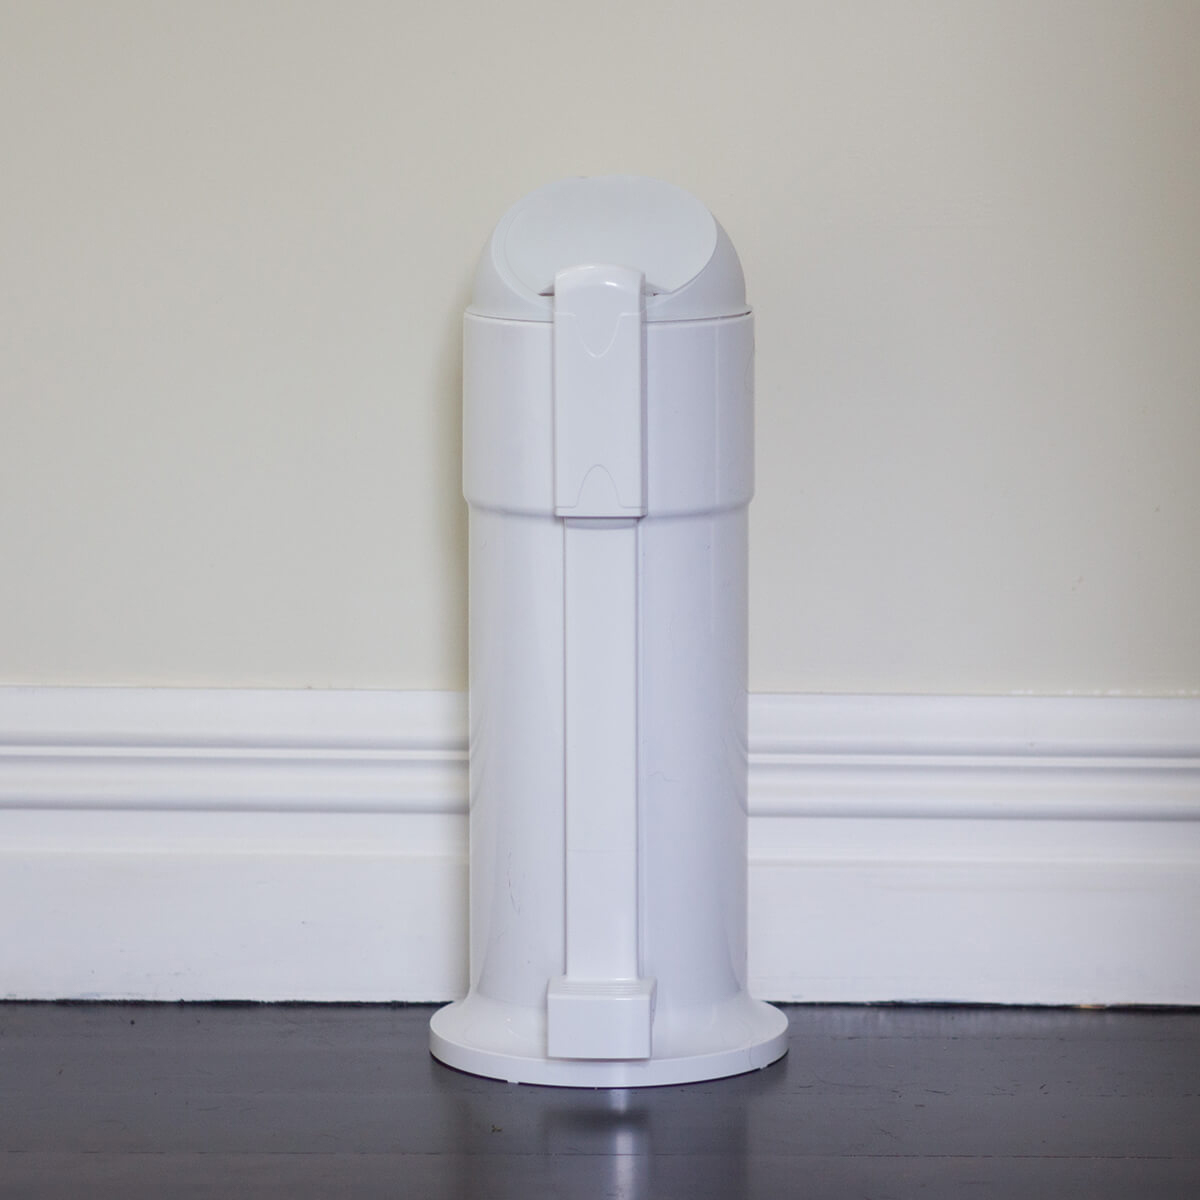 White Sanitary Waste Disposal Unit with Foot-pedal (6.5 litres)